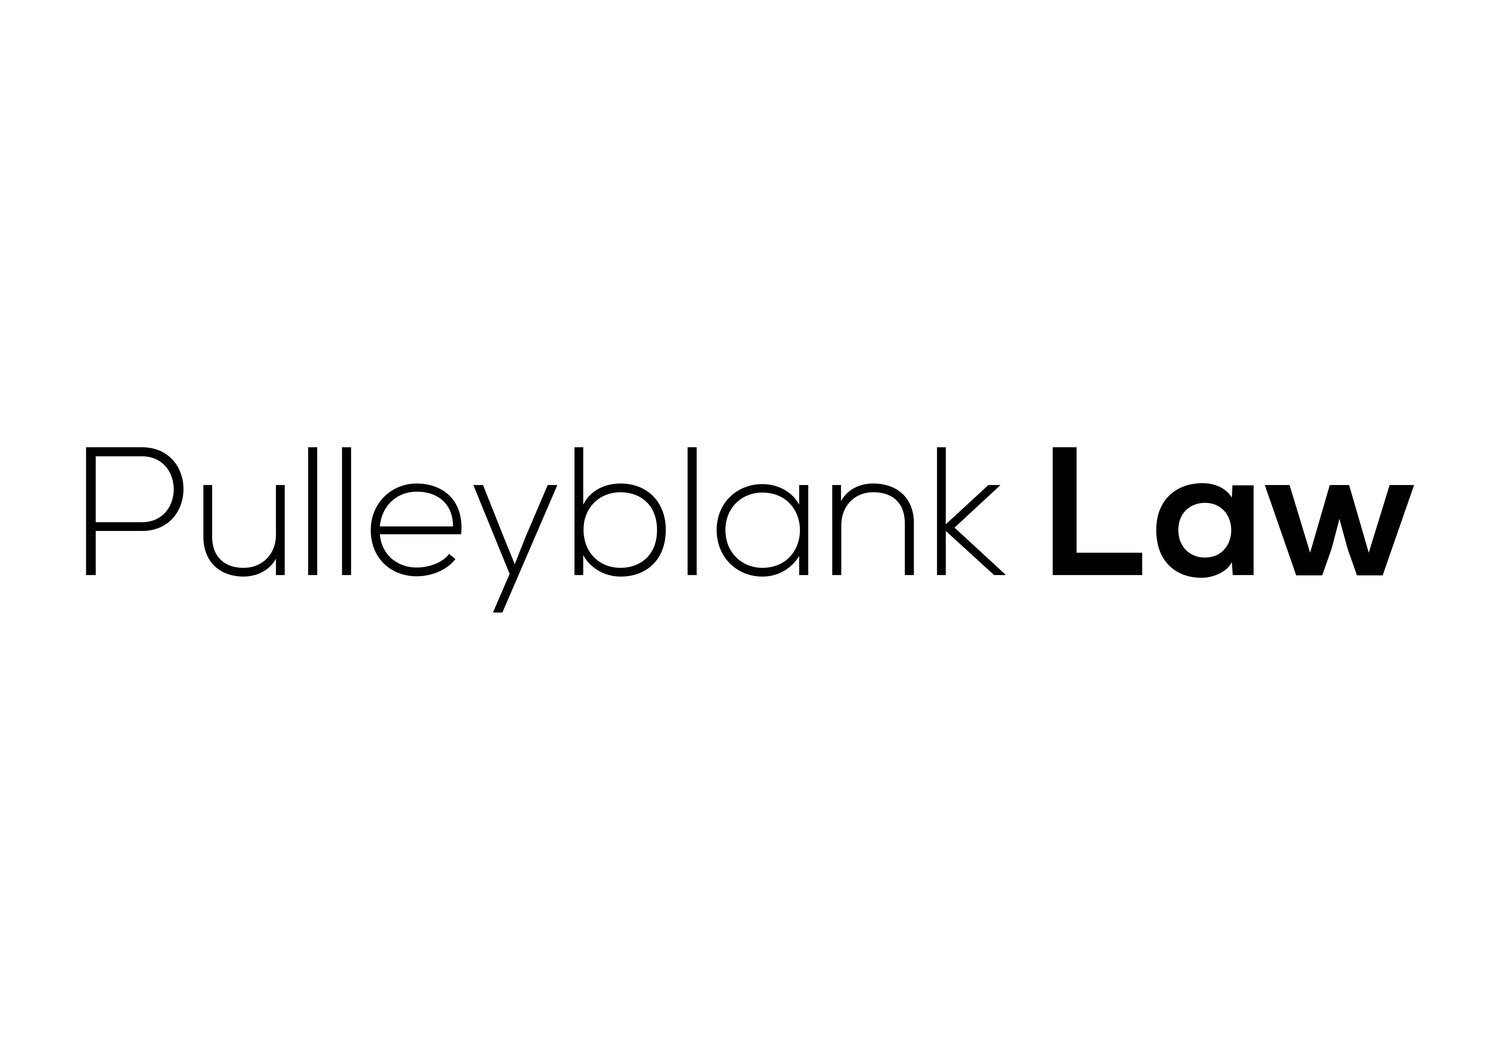 Pulleyblank Law